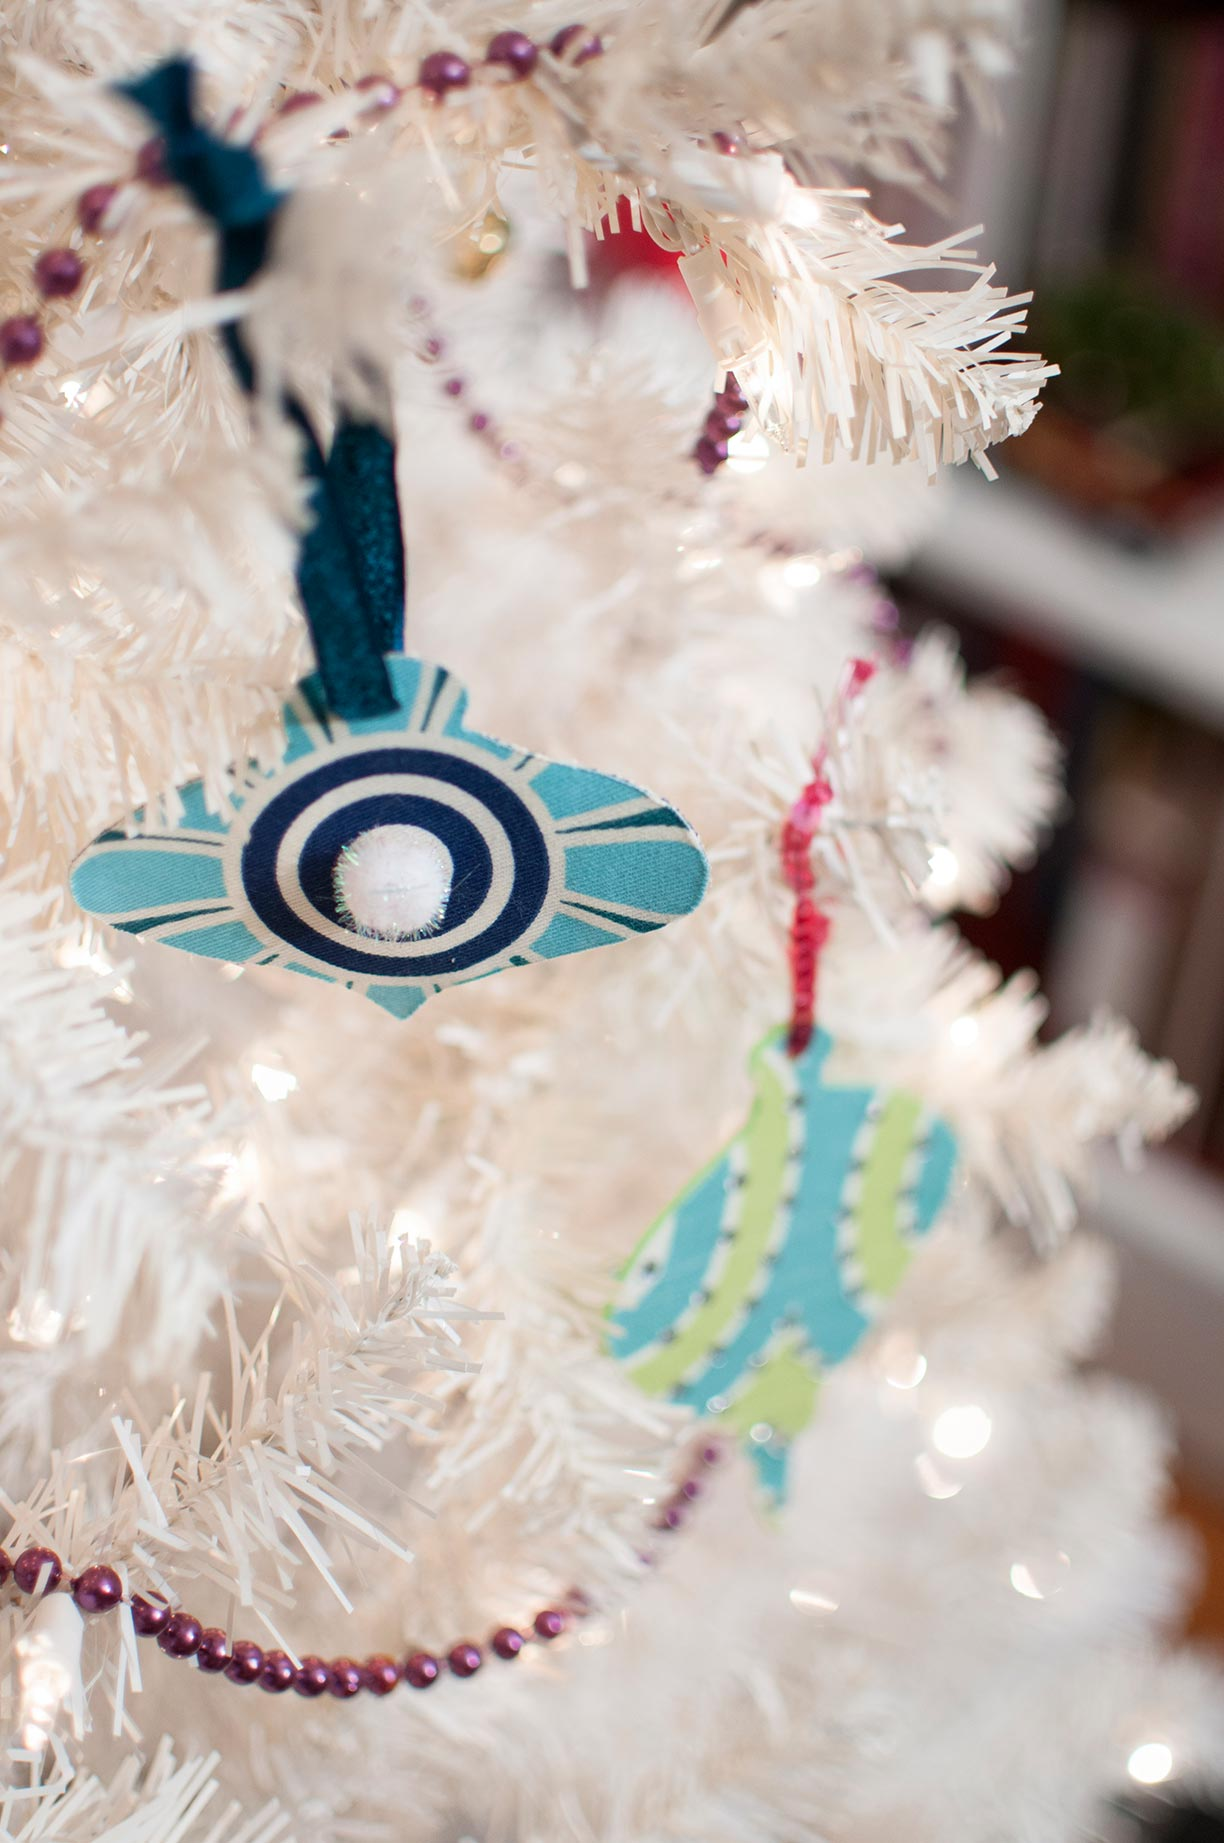 12 Days of HGTV HOME Fabric | Camille Smith ornaments